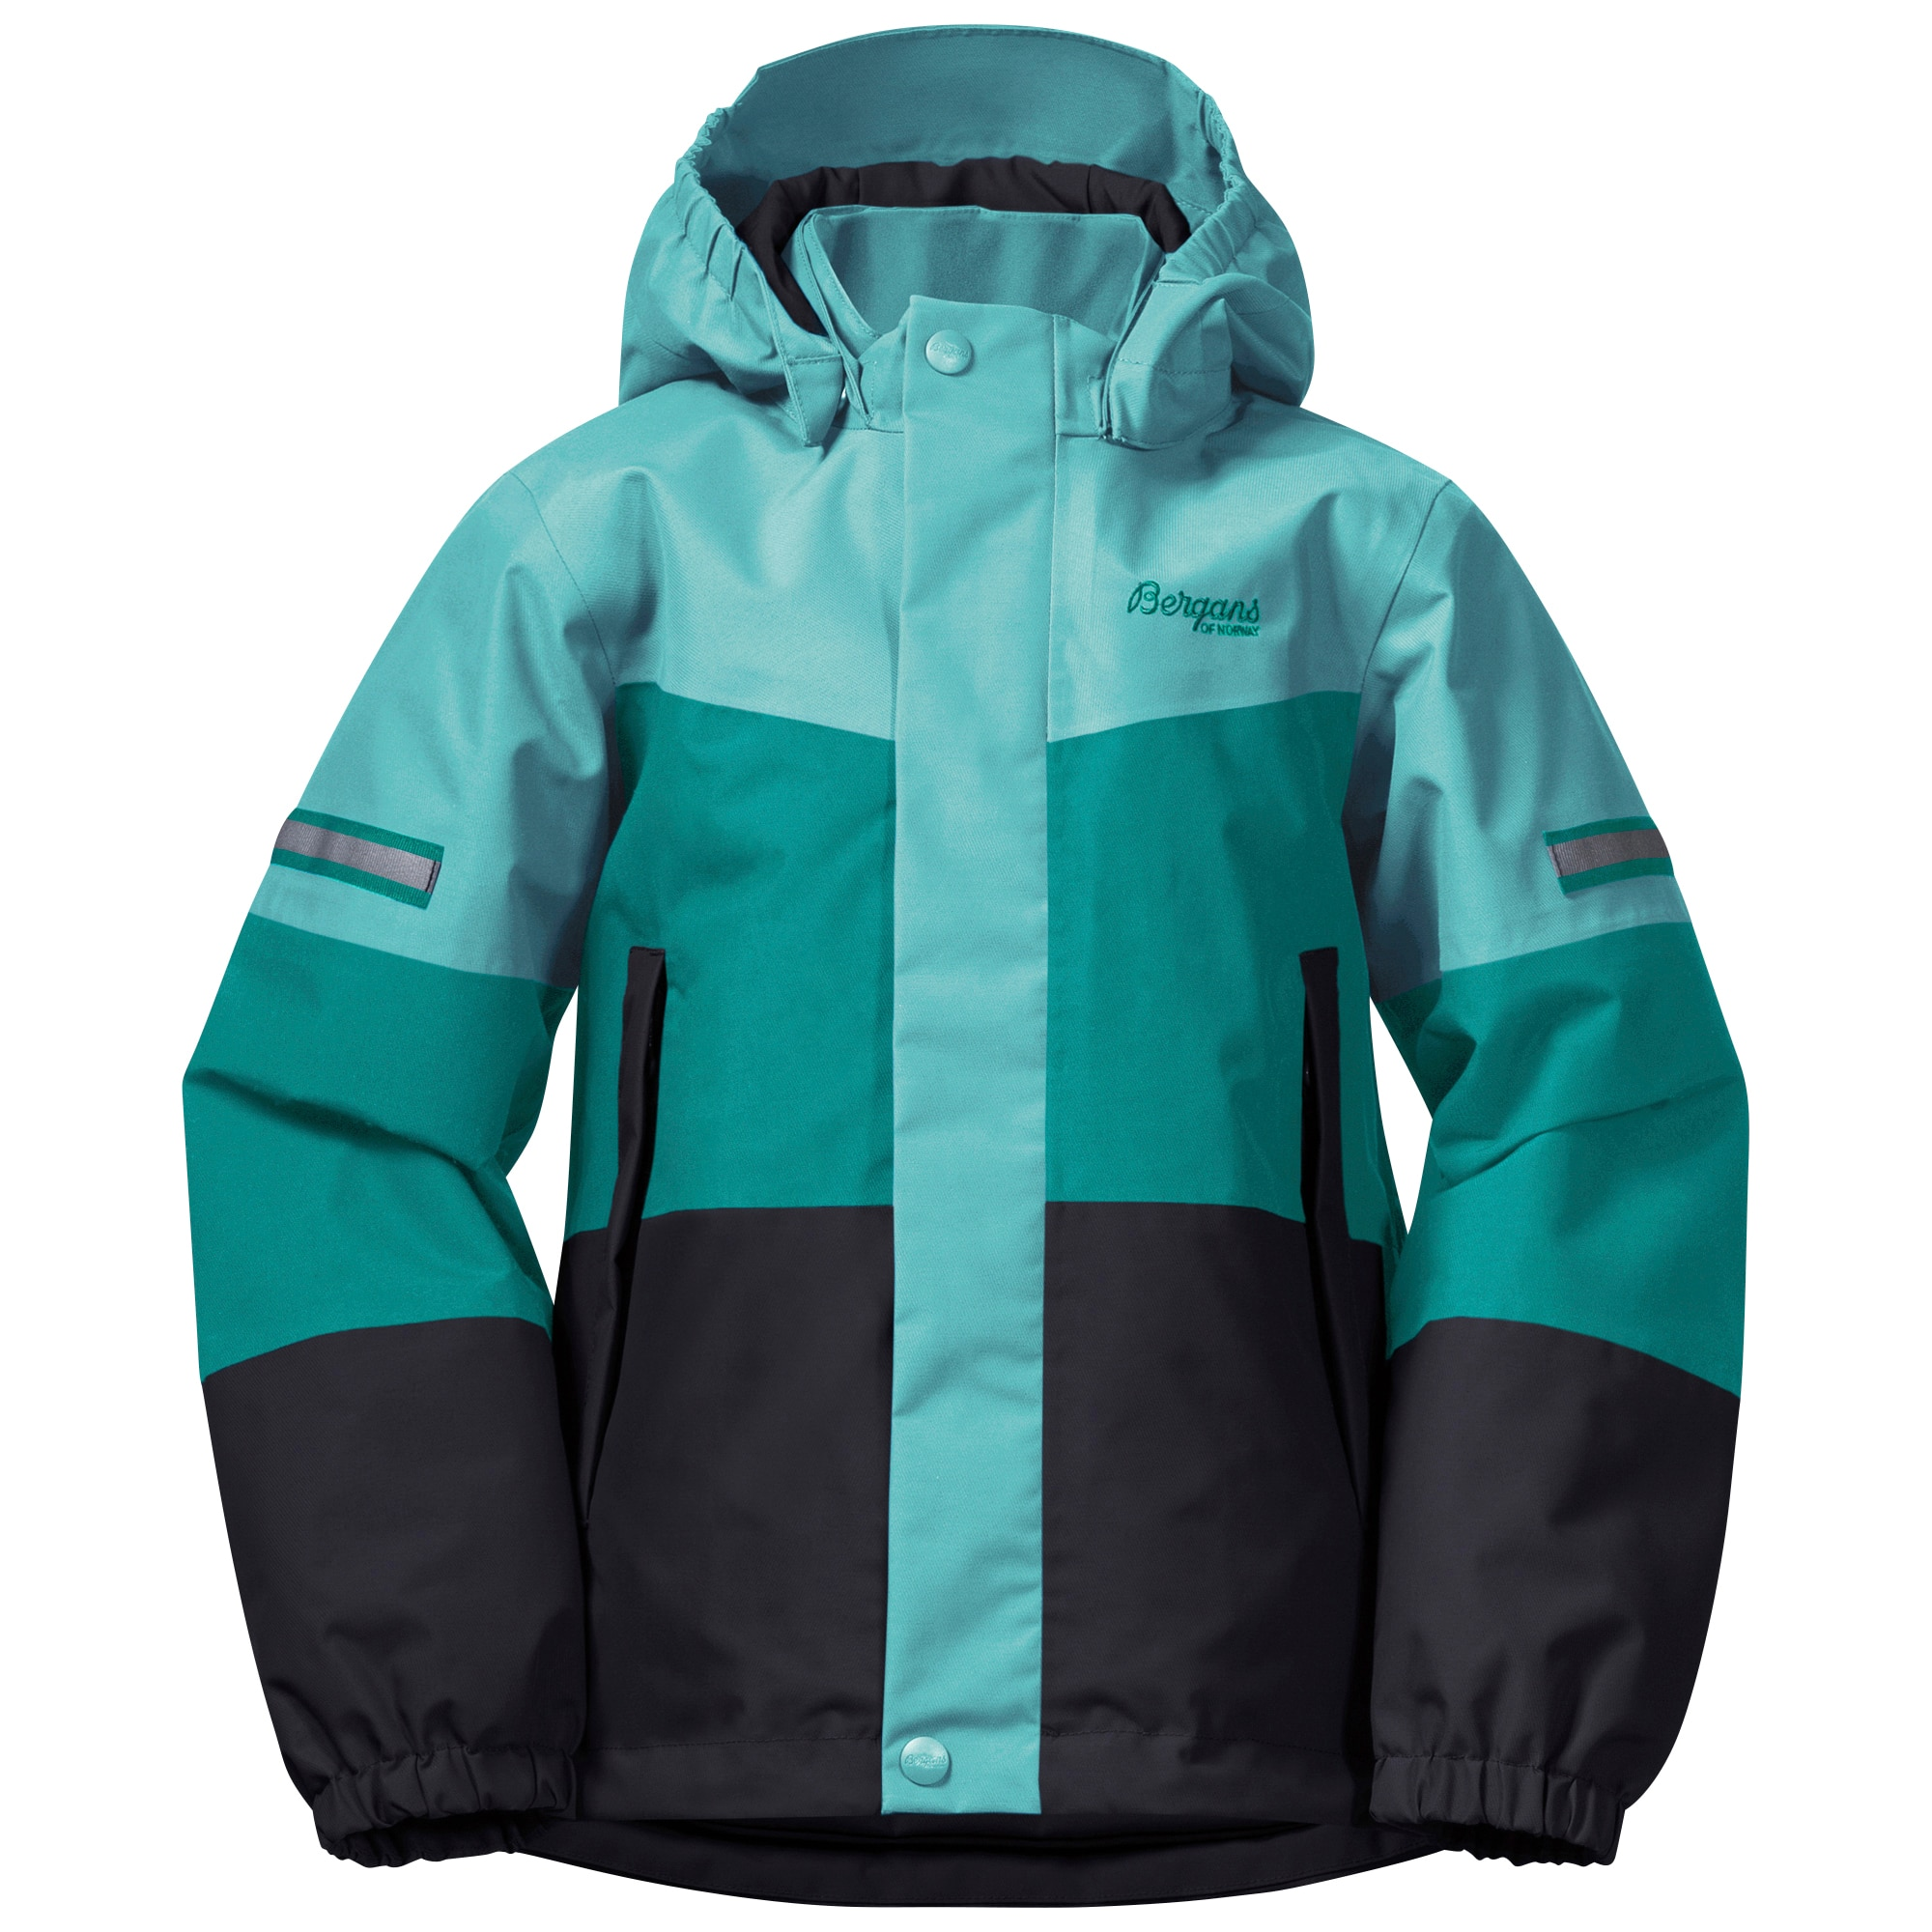 Lilletind Insulated Kids Jacket